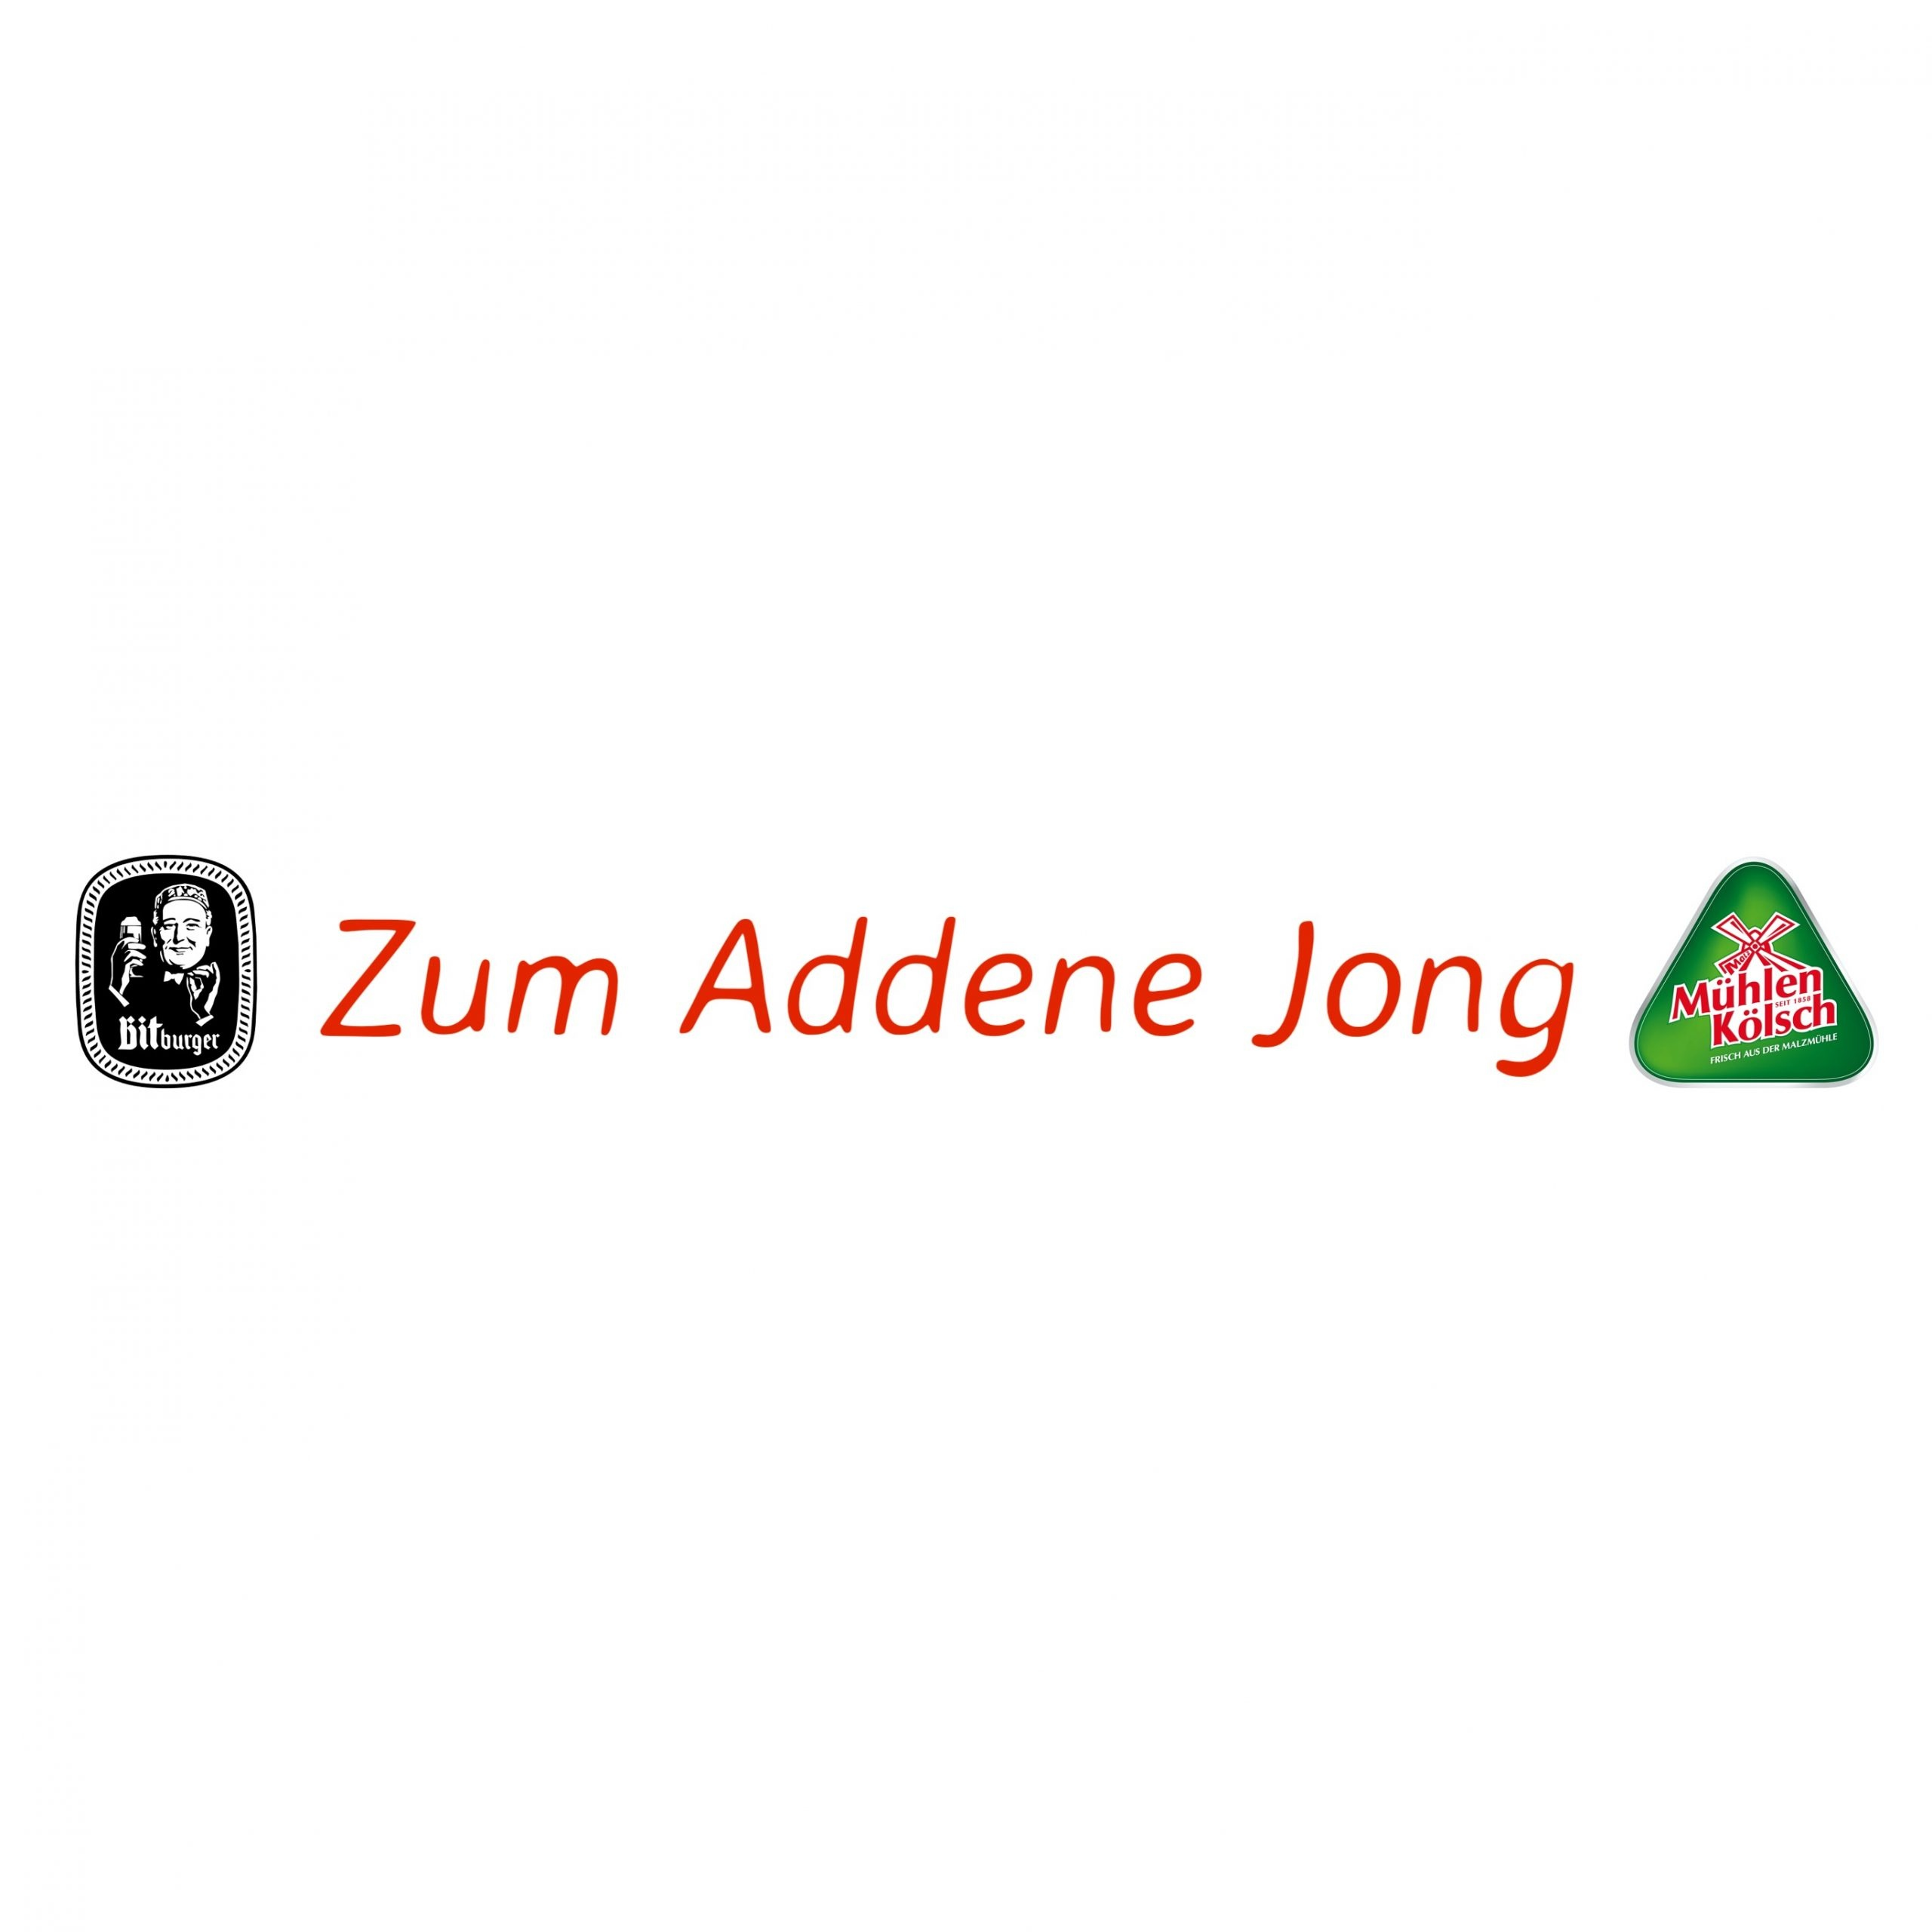 logo zum addene jong scaled